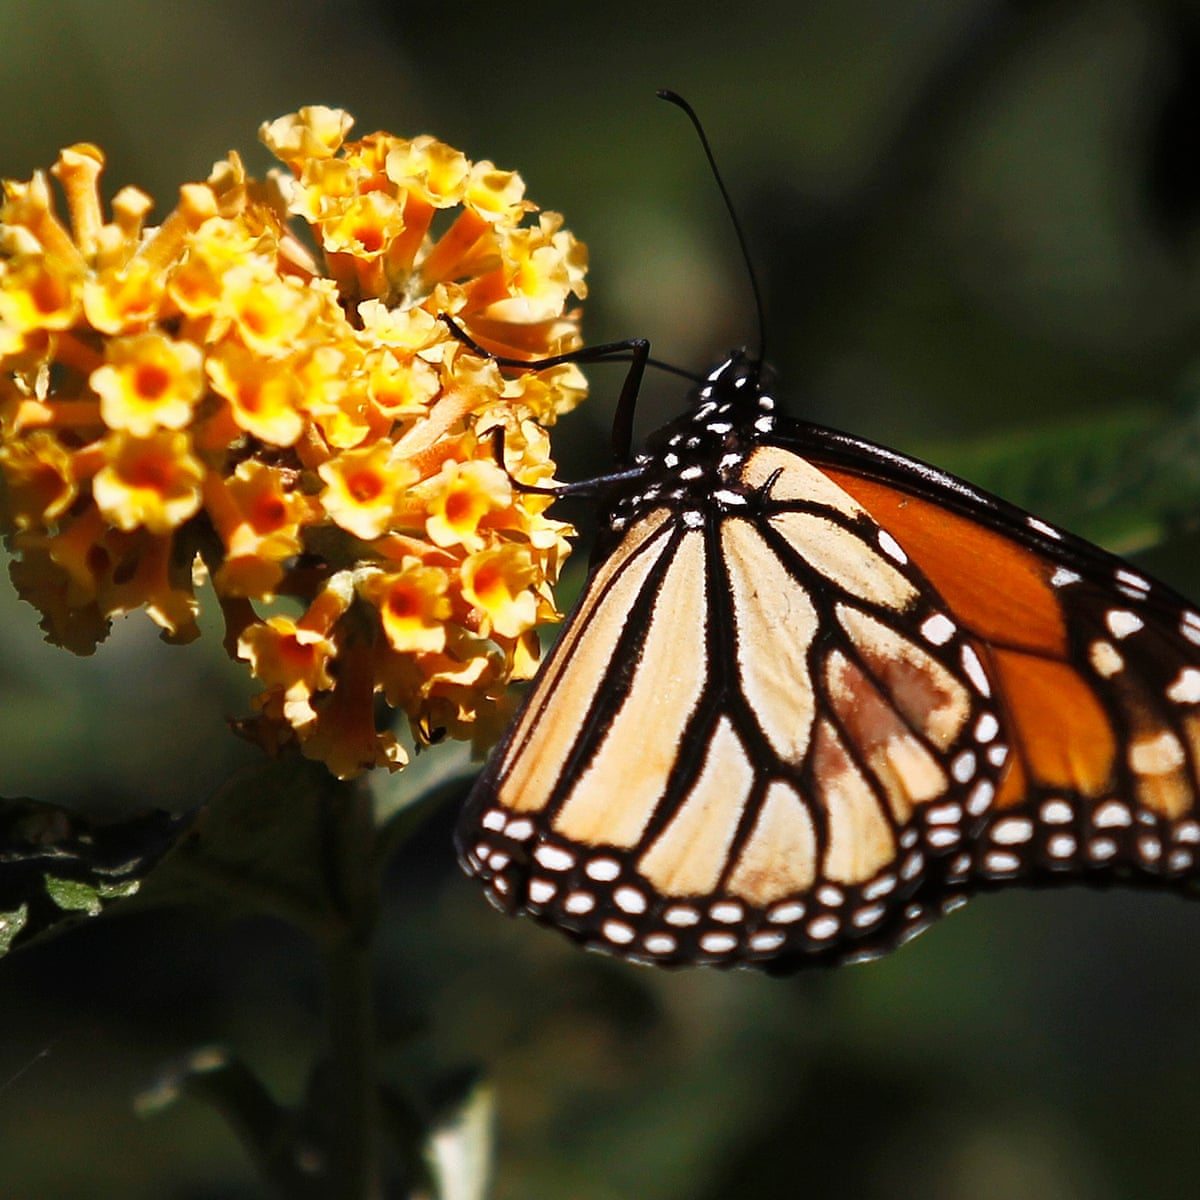 It S A Sad Reality A Troubling Trend Sees A 97 Decline In Monarch Butterflies Us News The Guardian